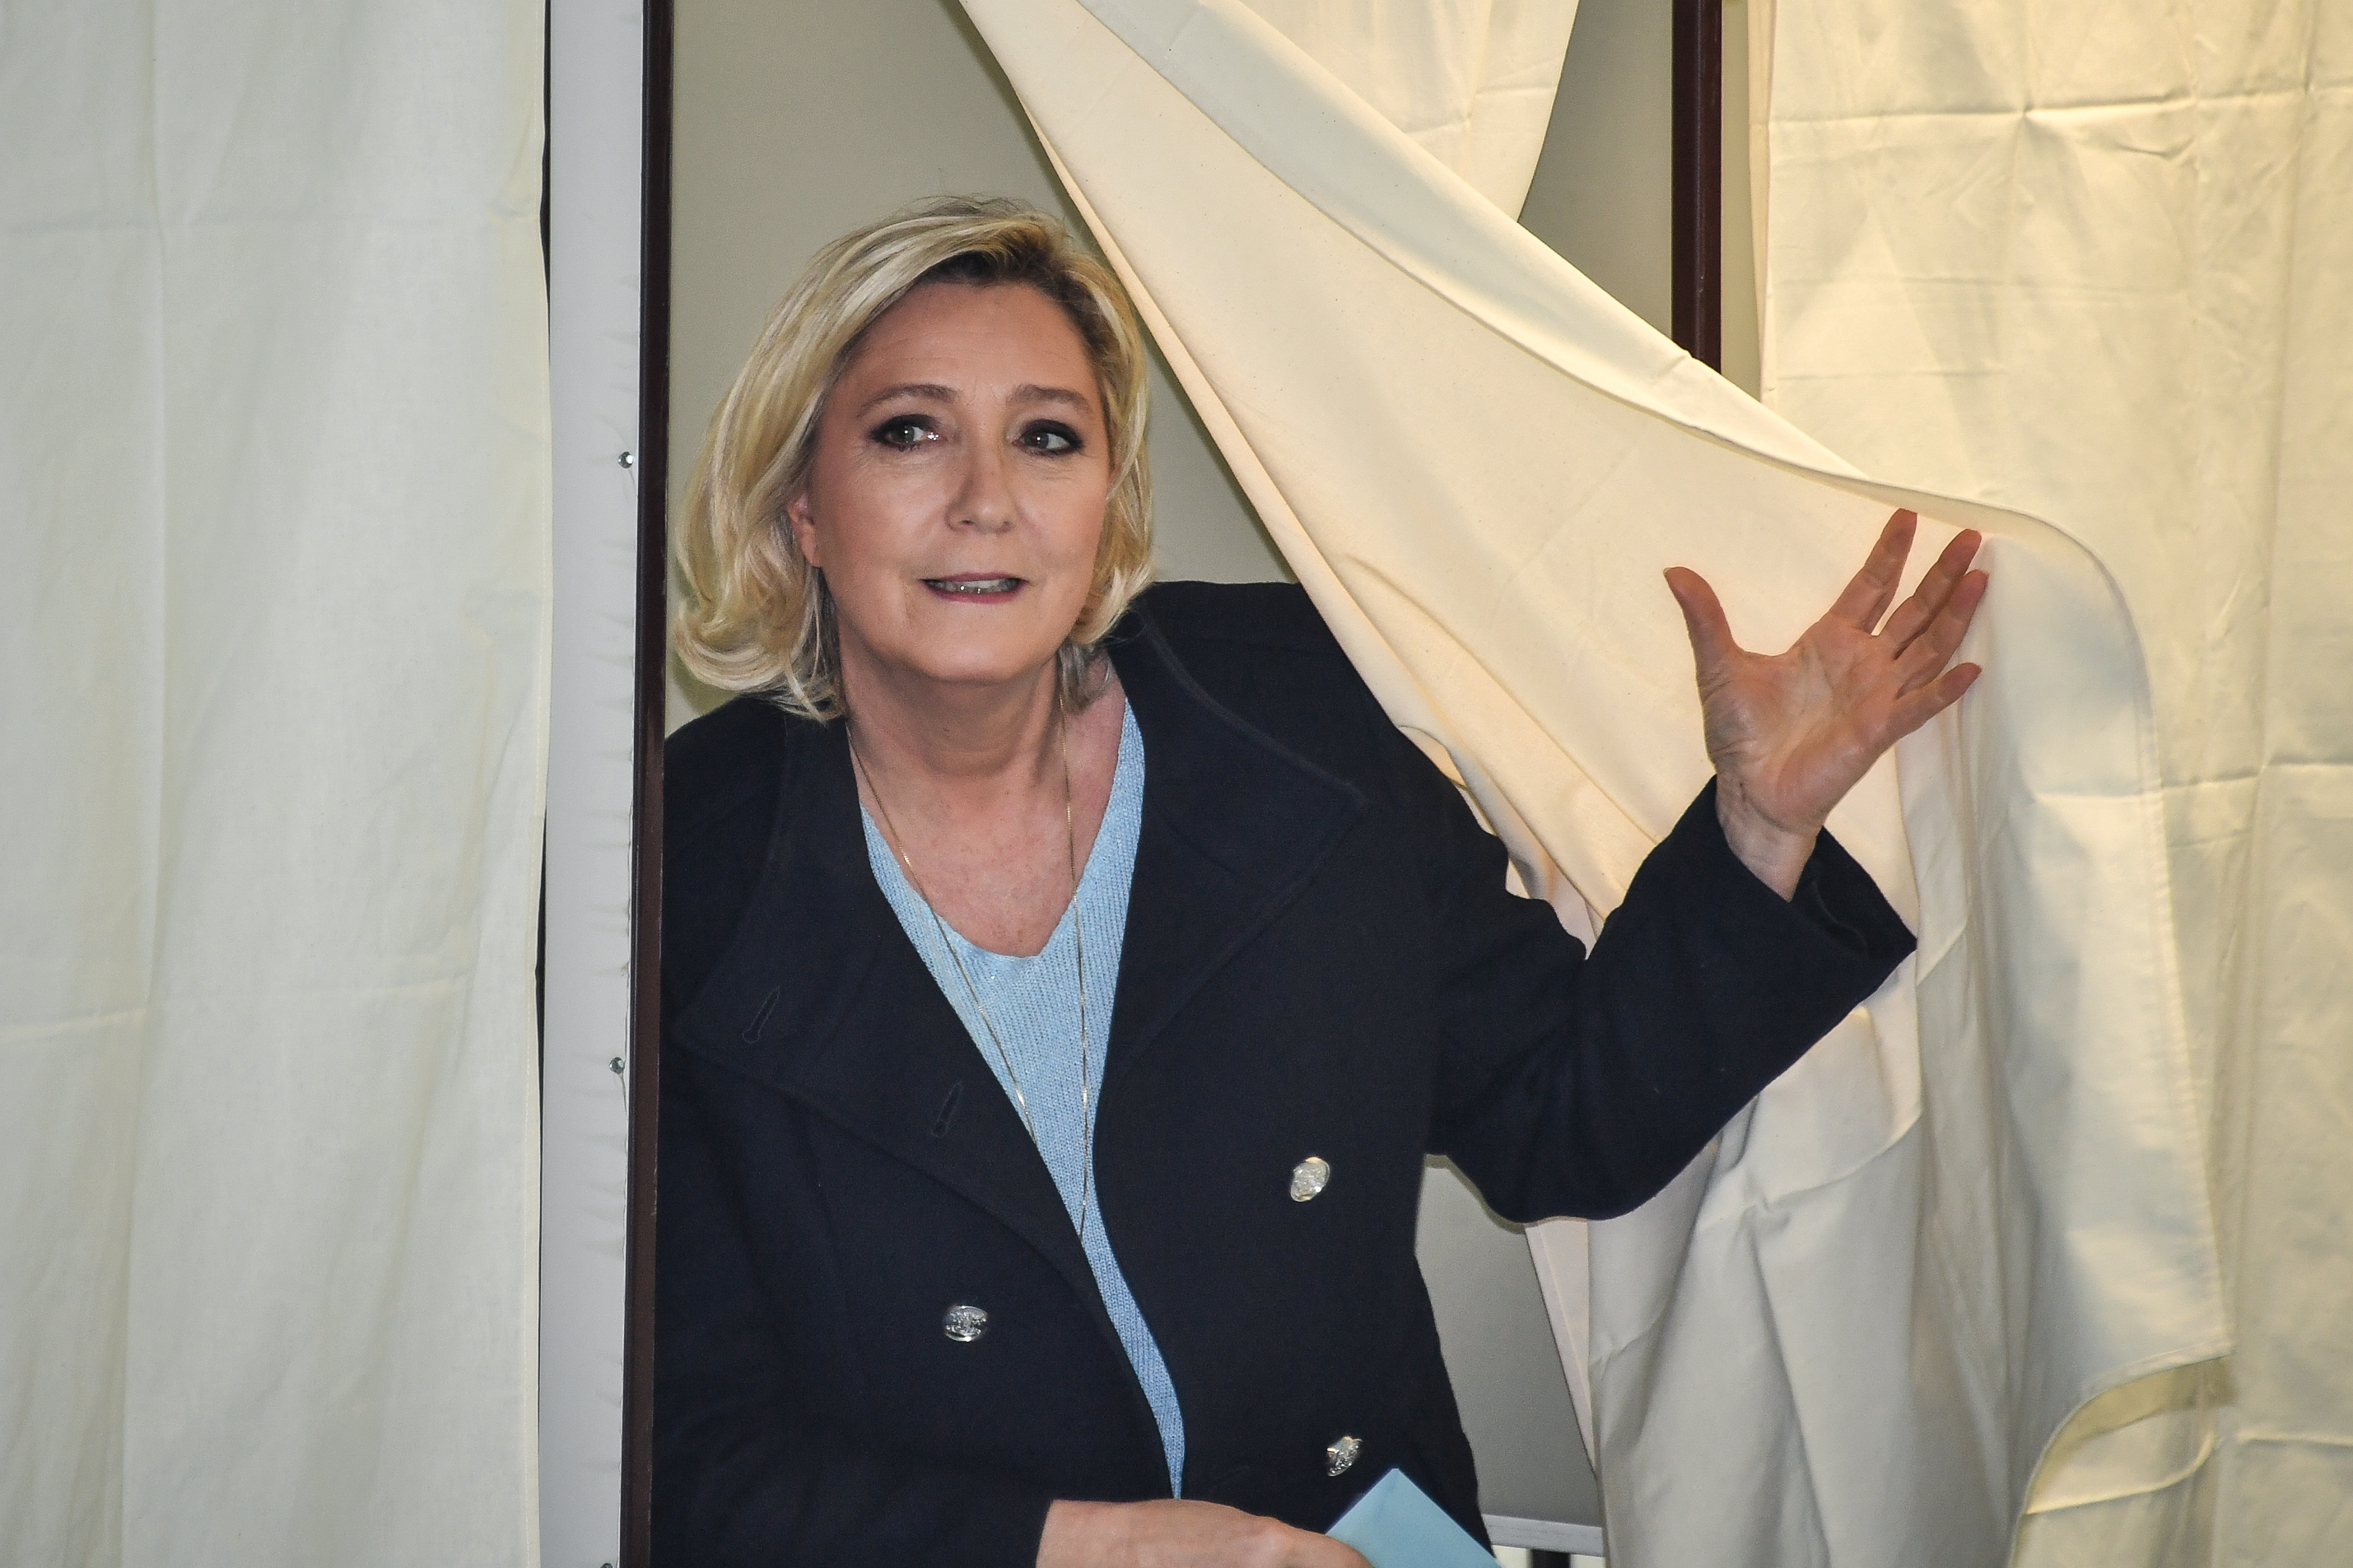 French far-right National Rally president Le Pen leaves the polling booth to cast her vote for the European Parliament.